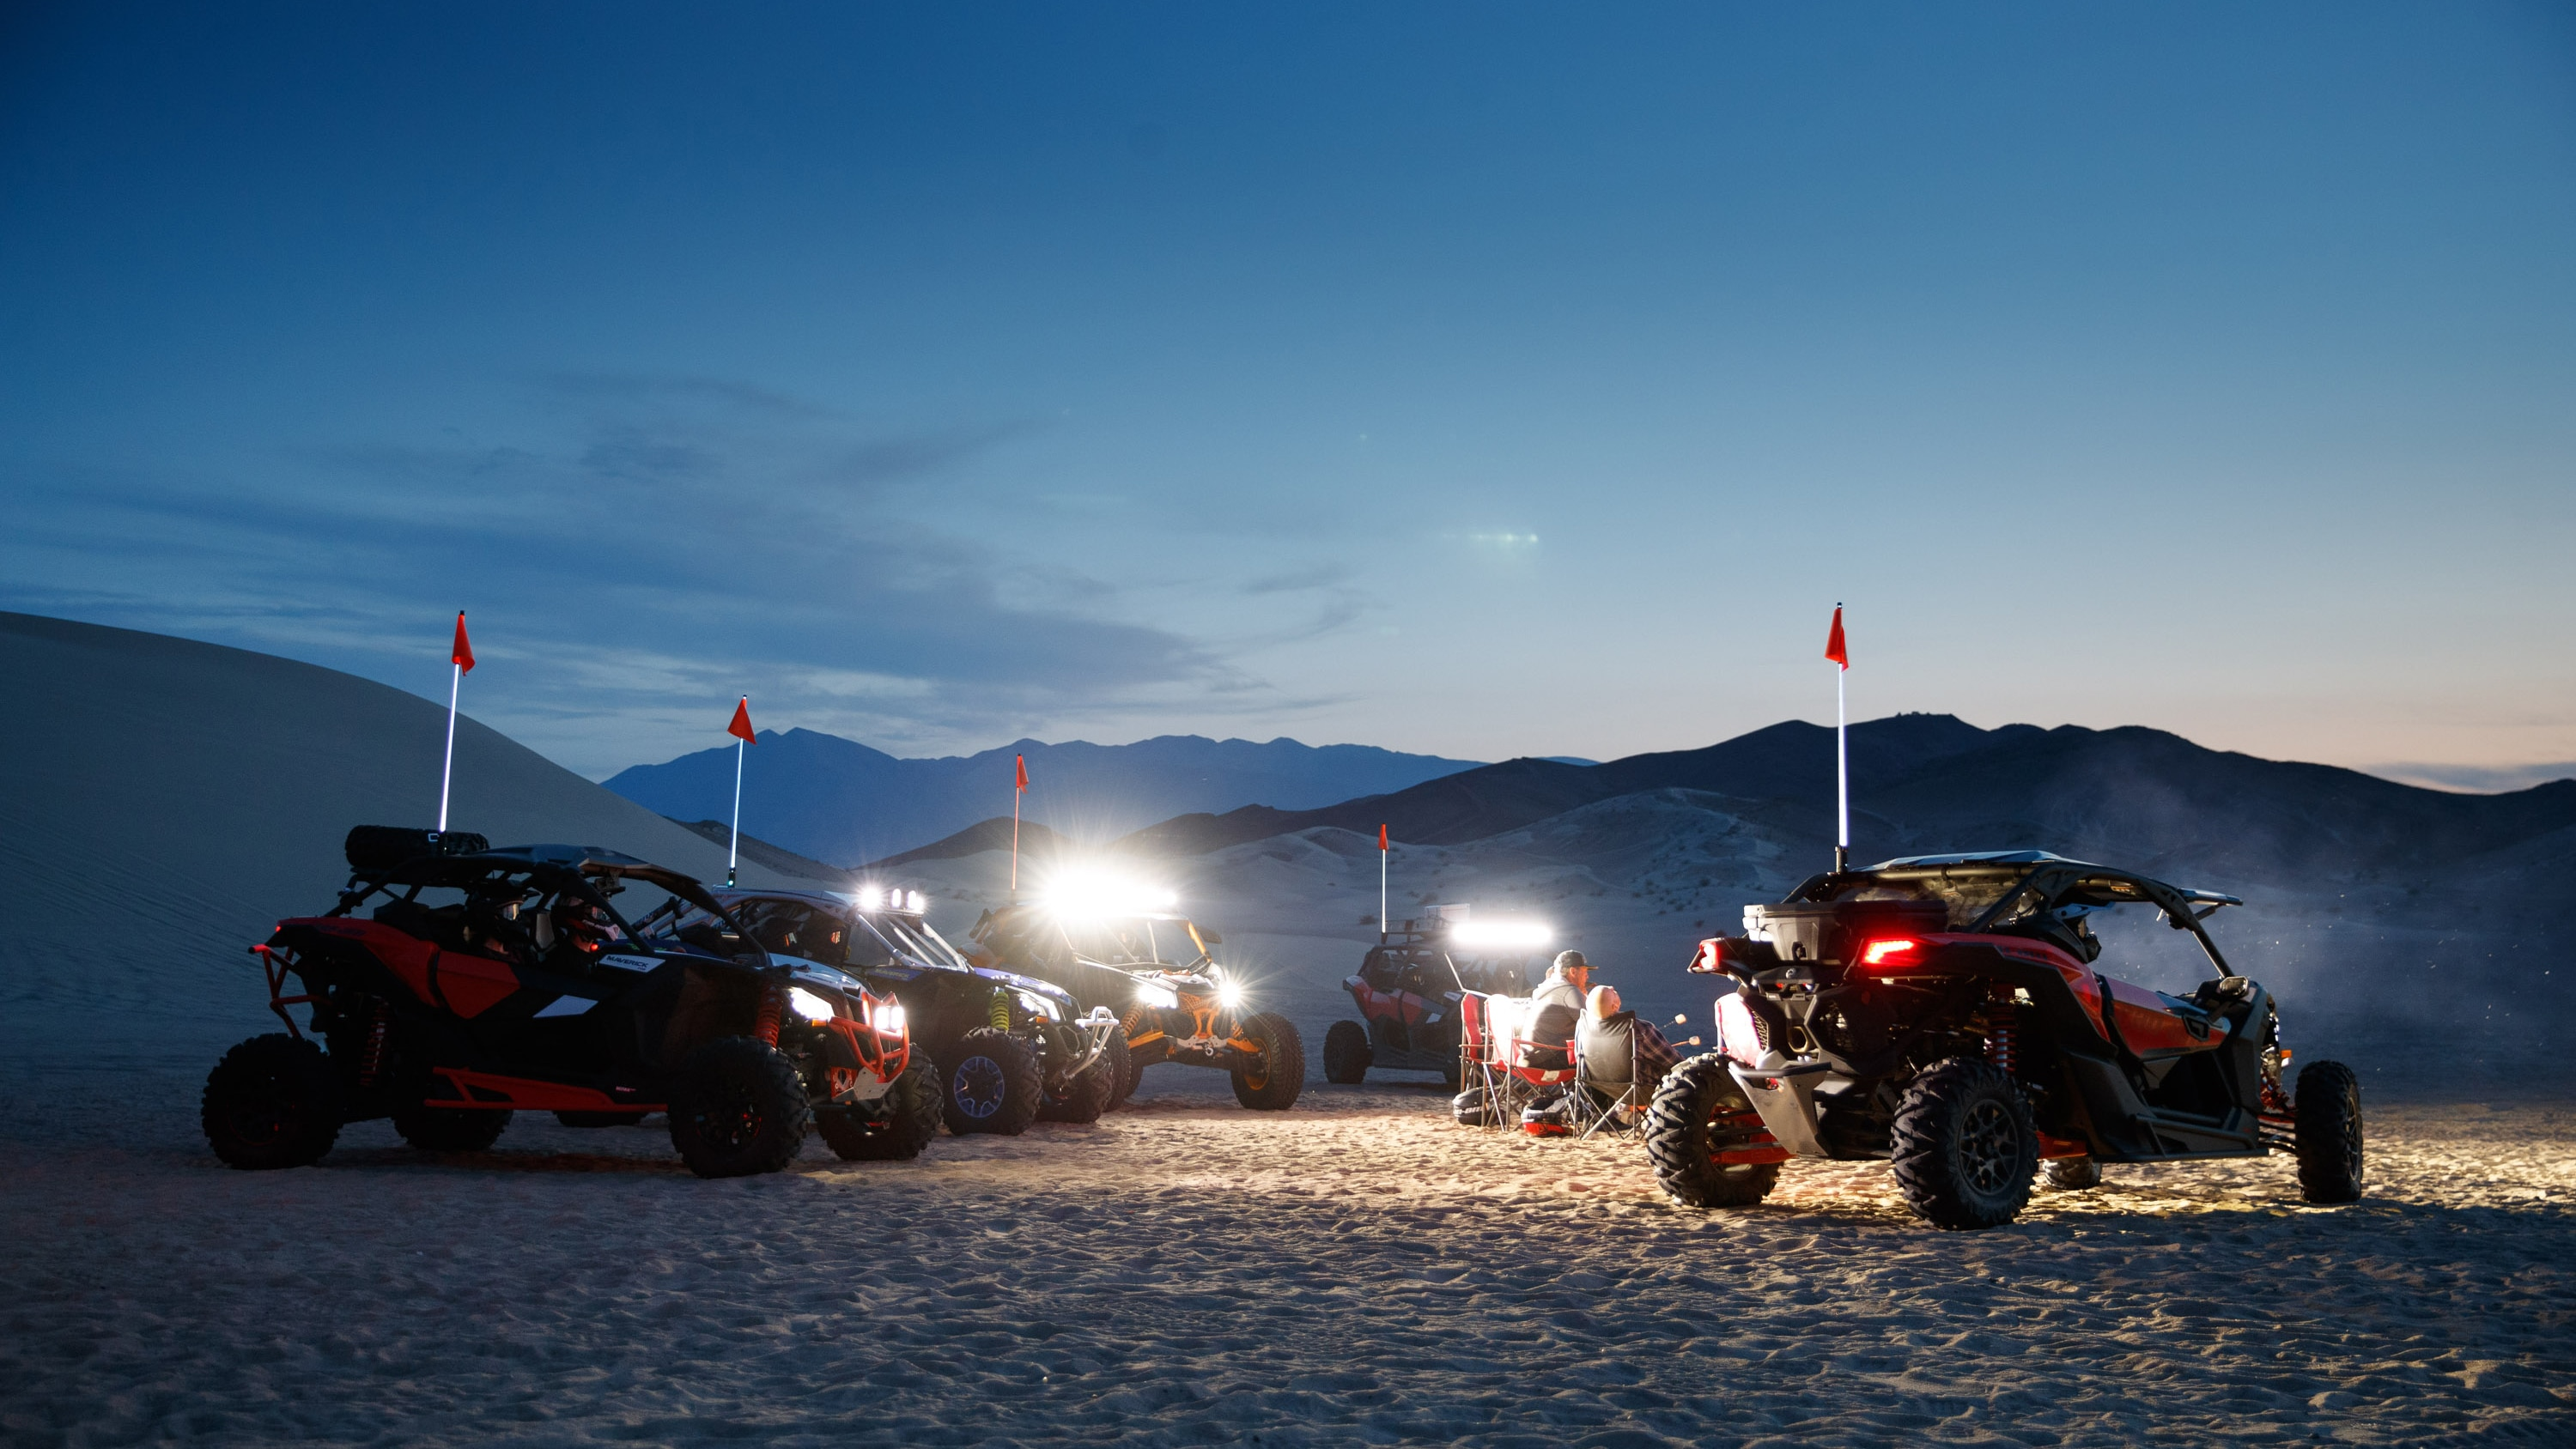 Five Maverick models at night in the desert